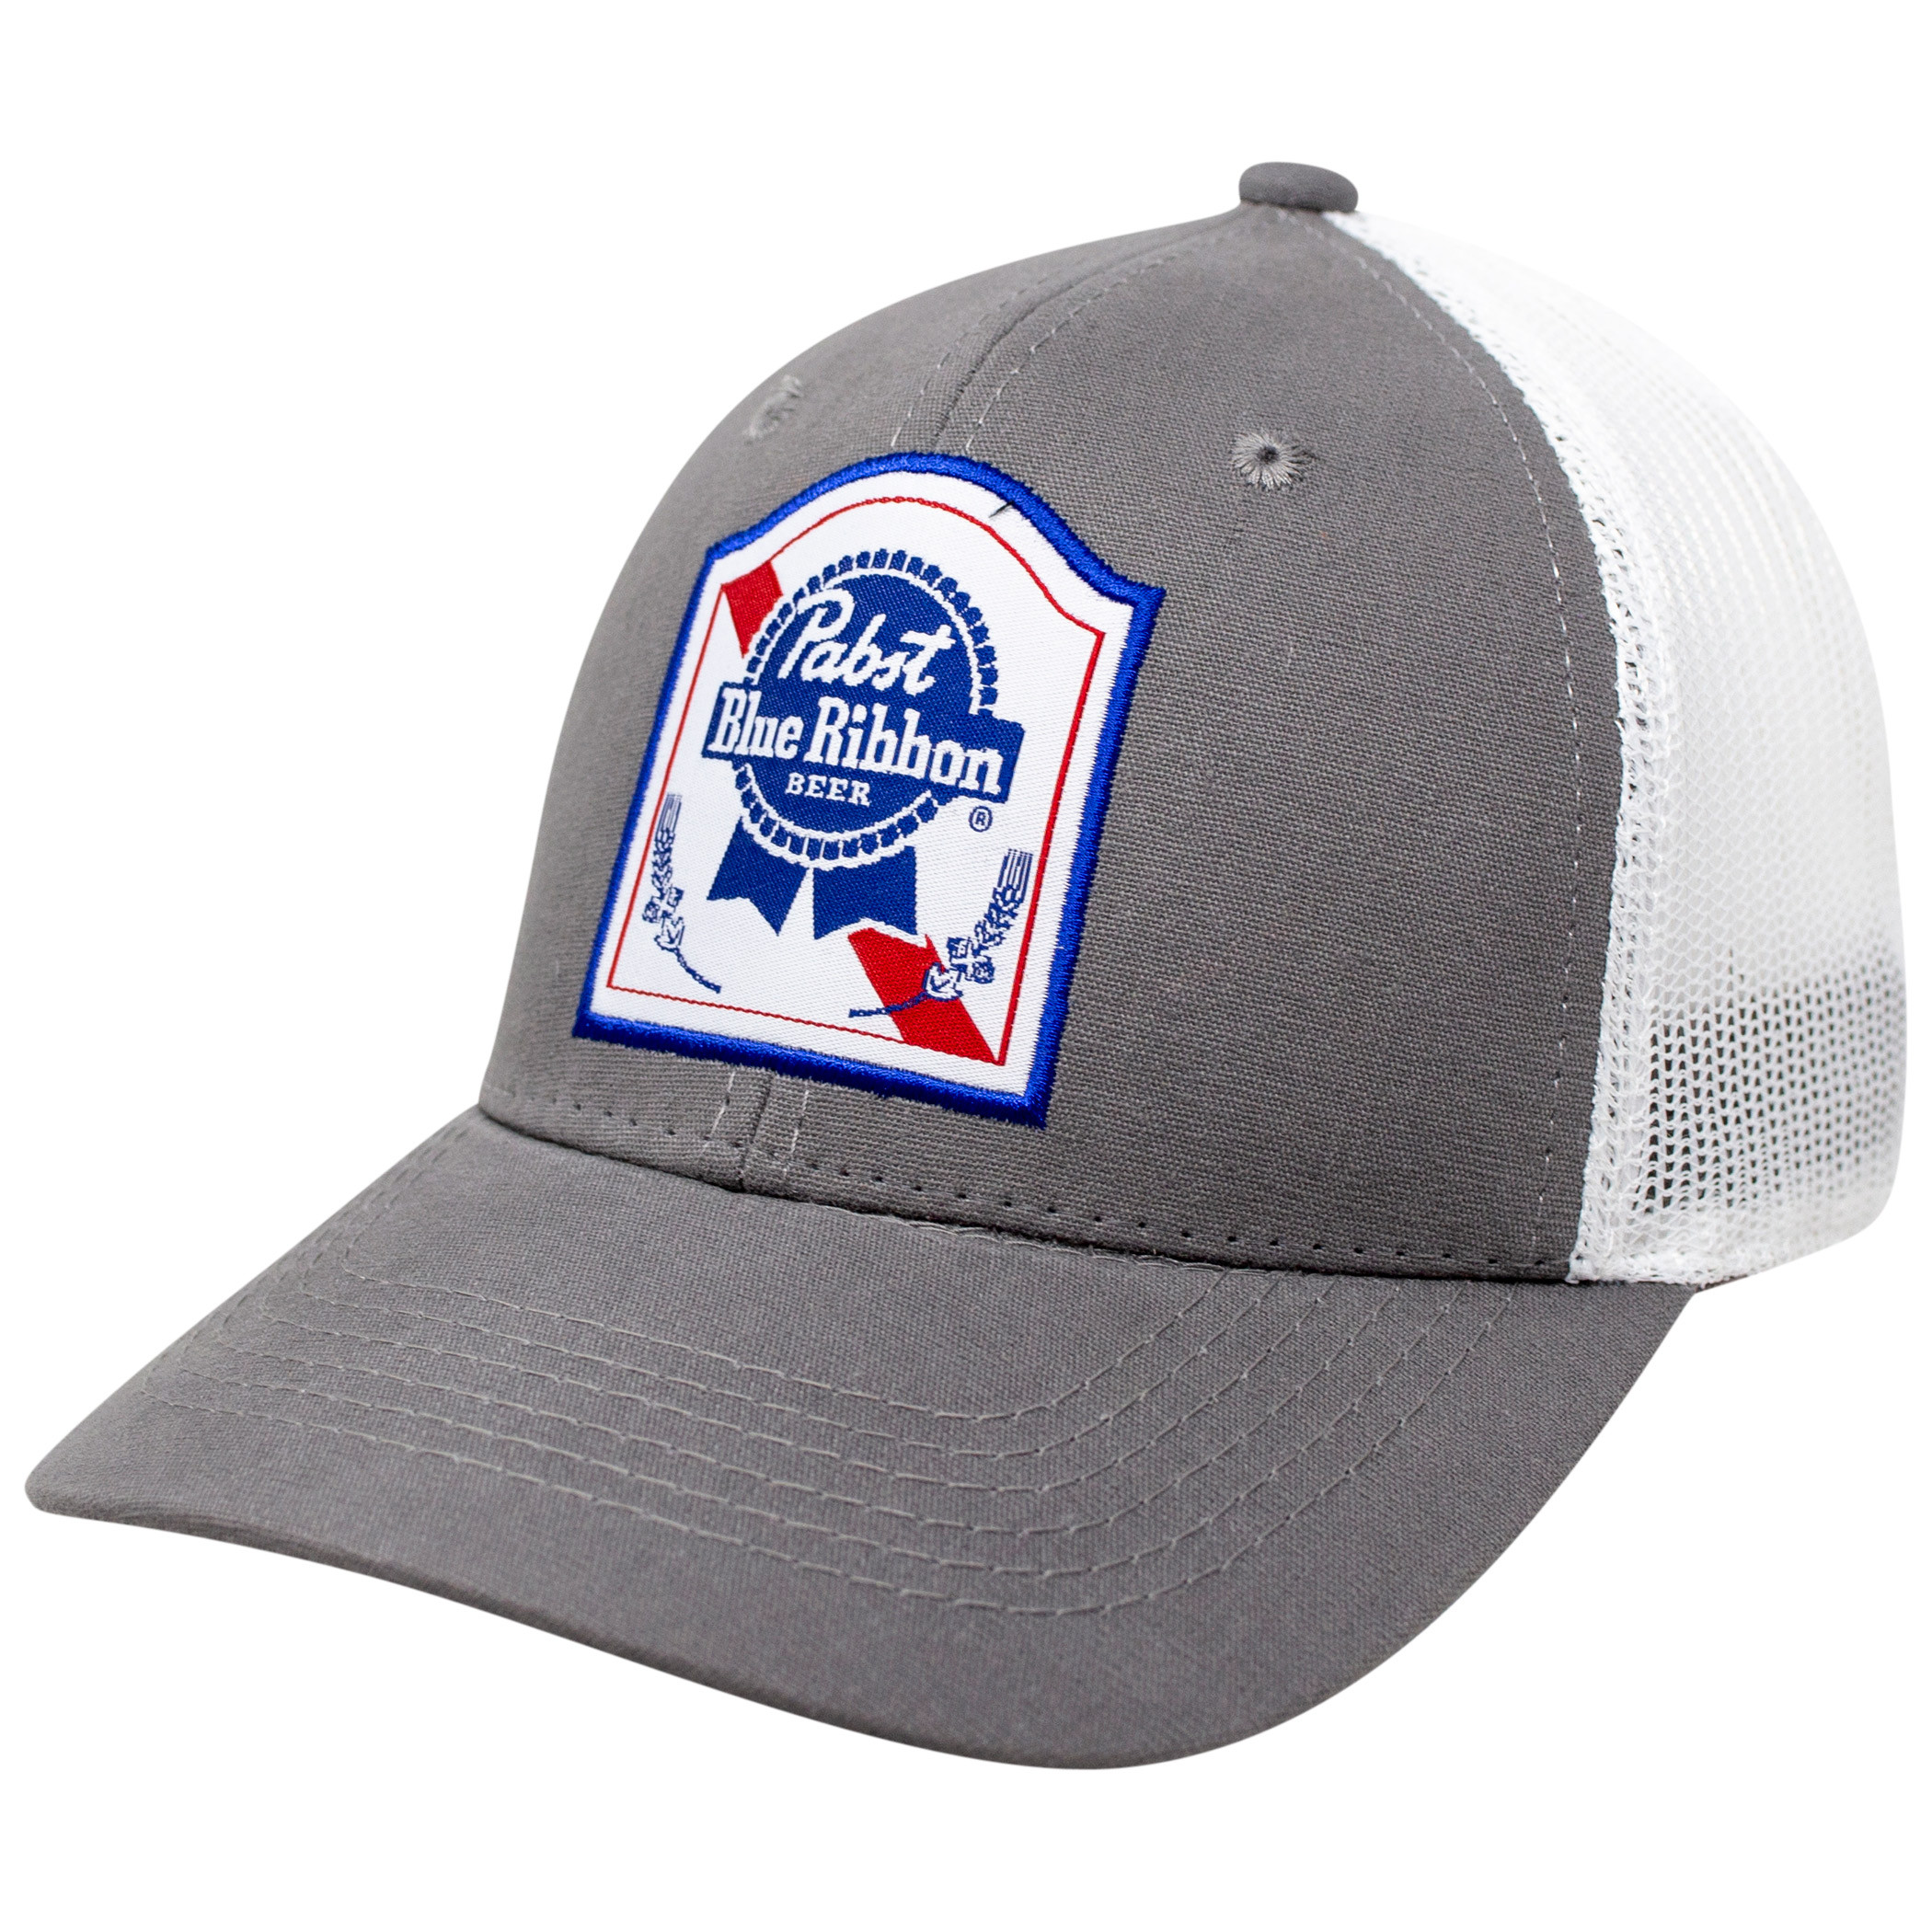 Pabst Blue Ribbon PBR Label Snapback Trucker Hat